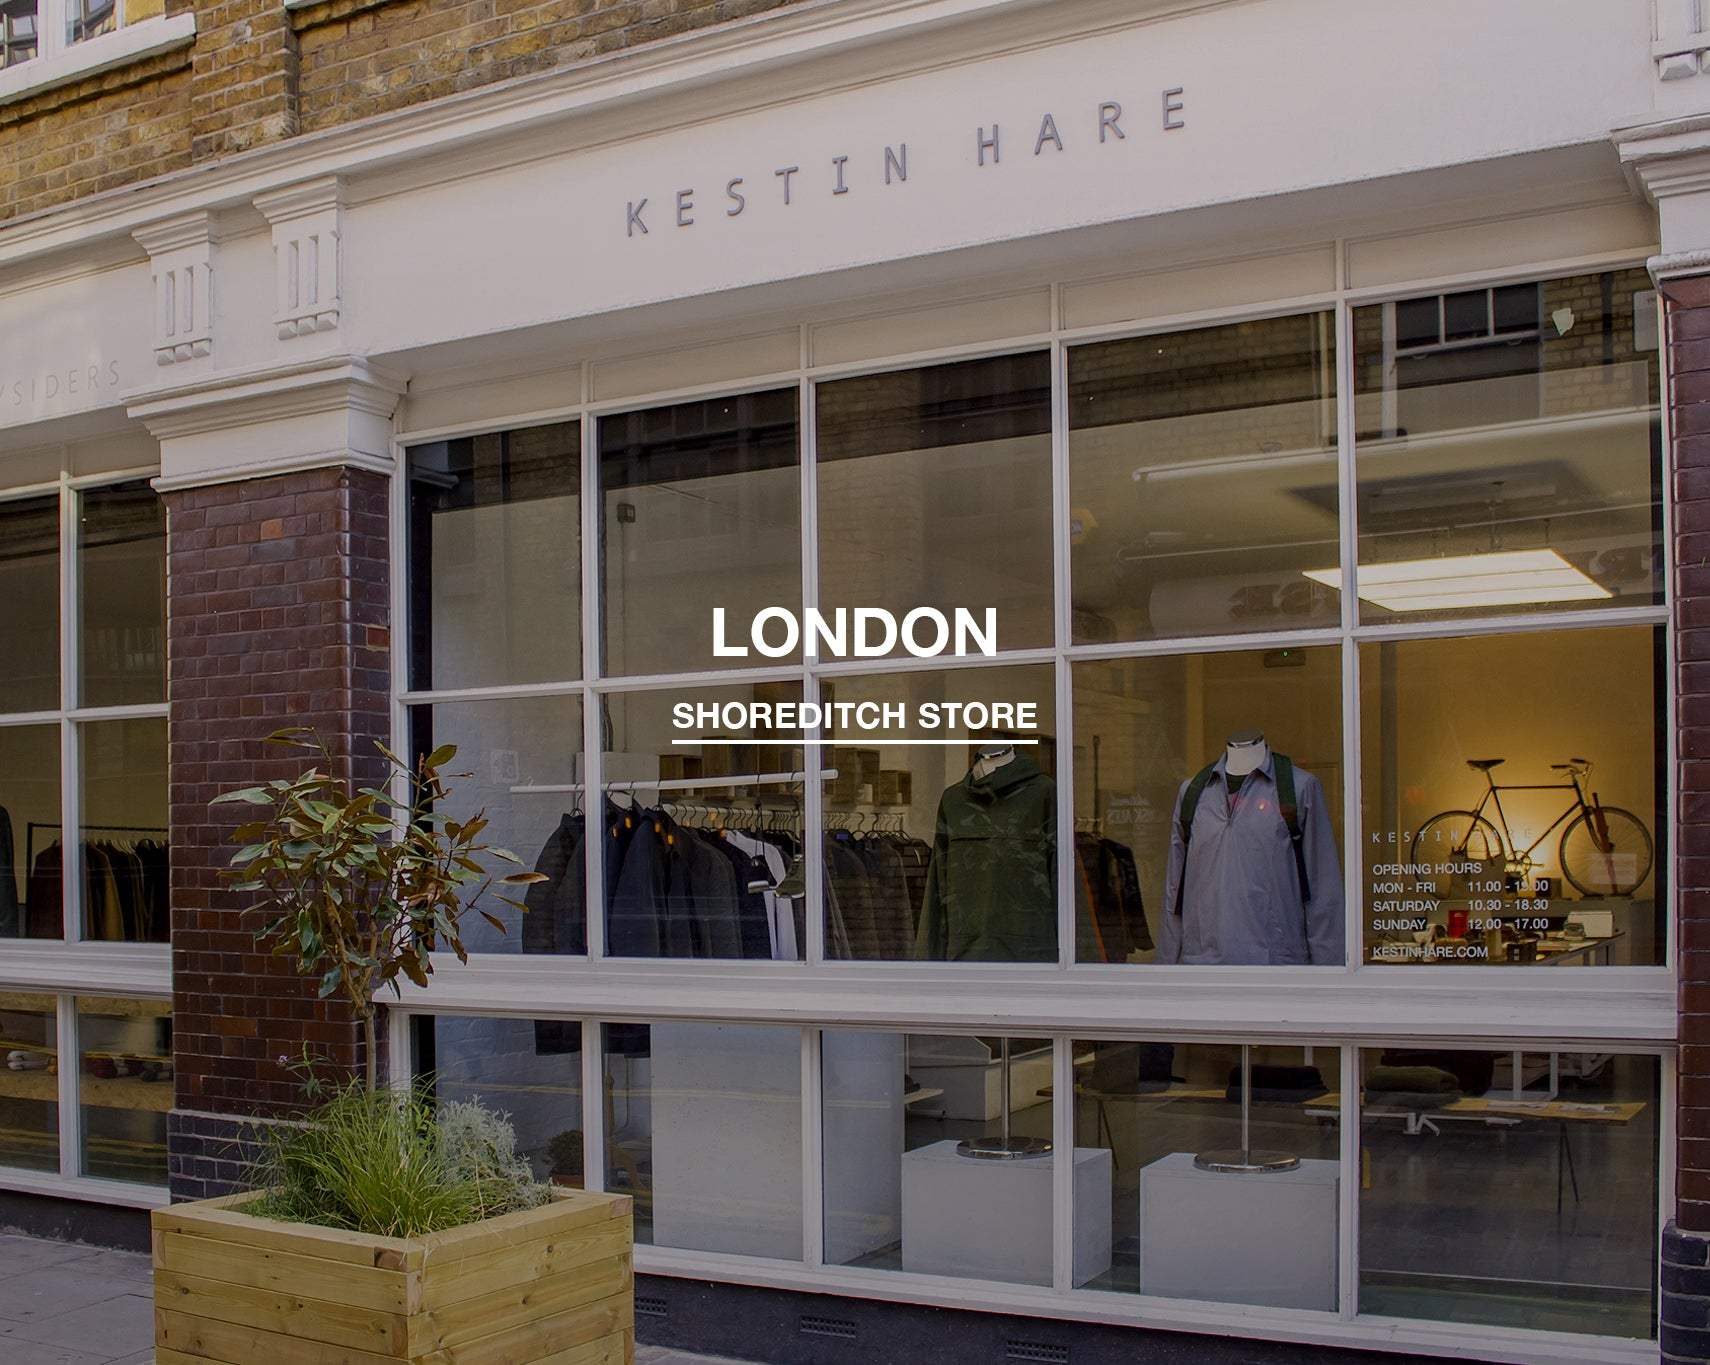 Kestin Hare Shoreditch store